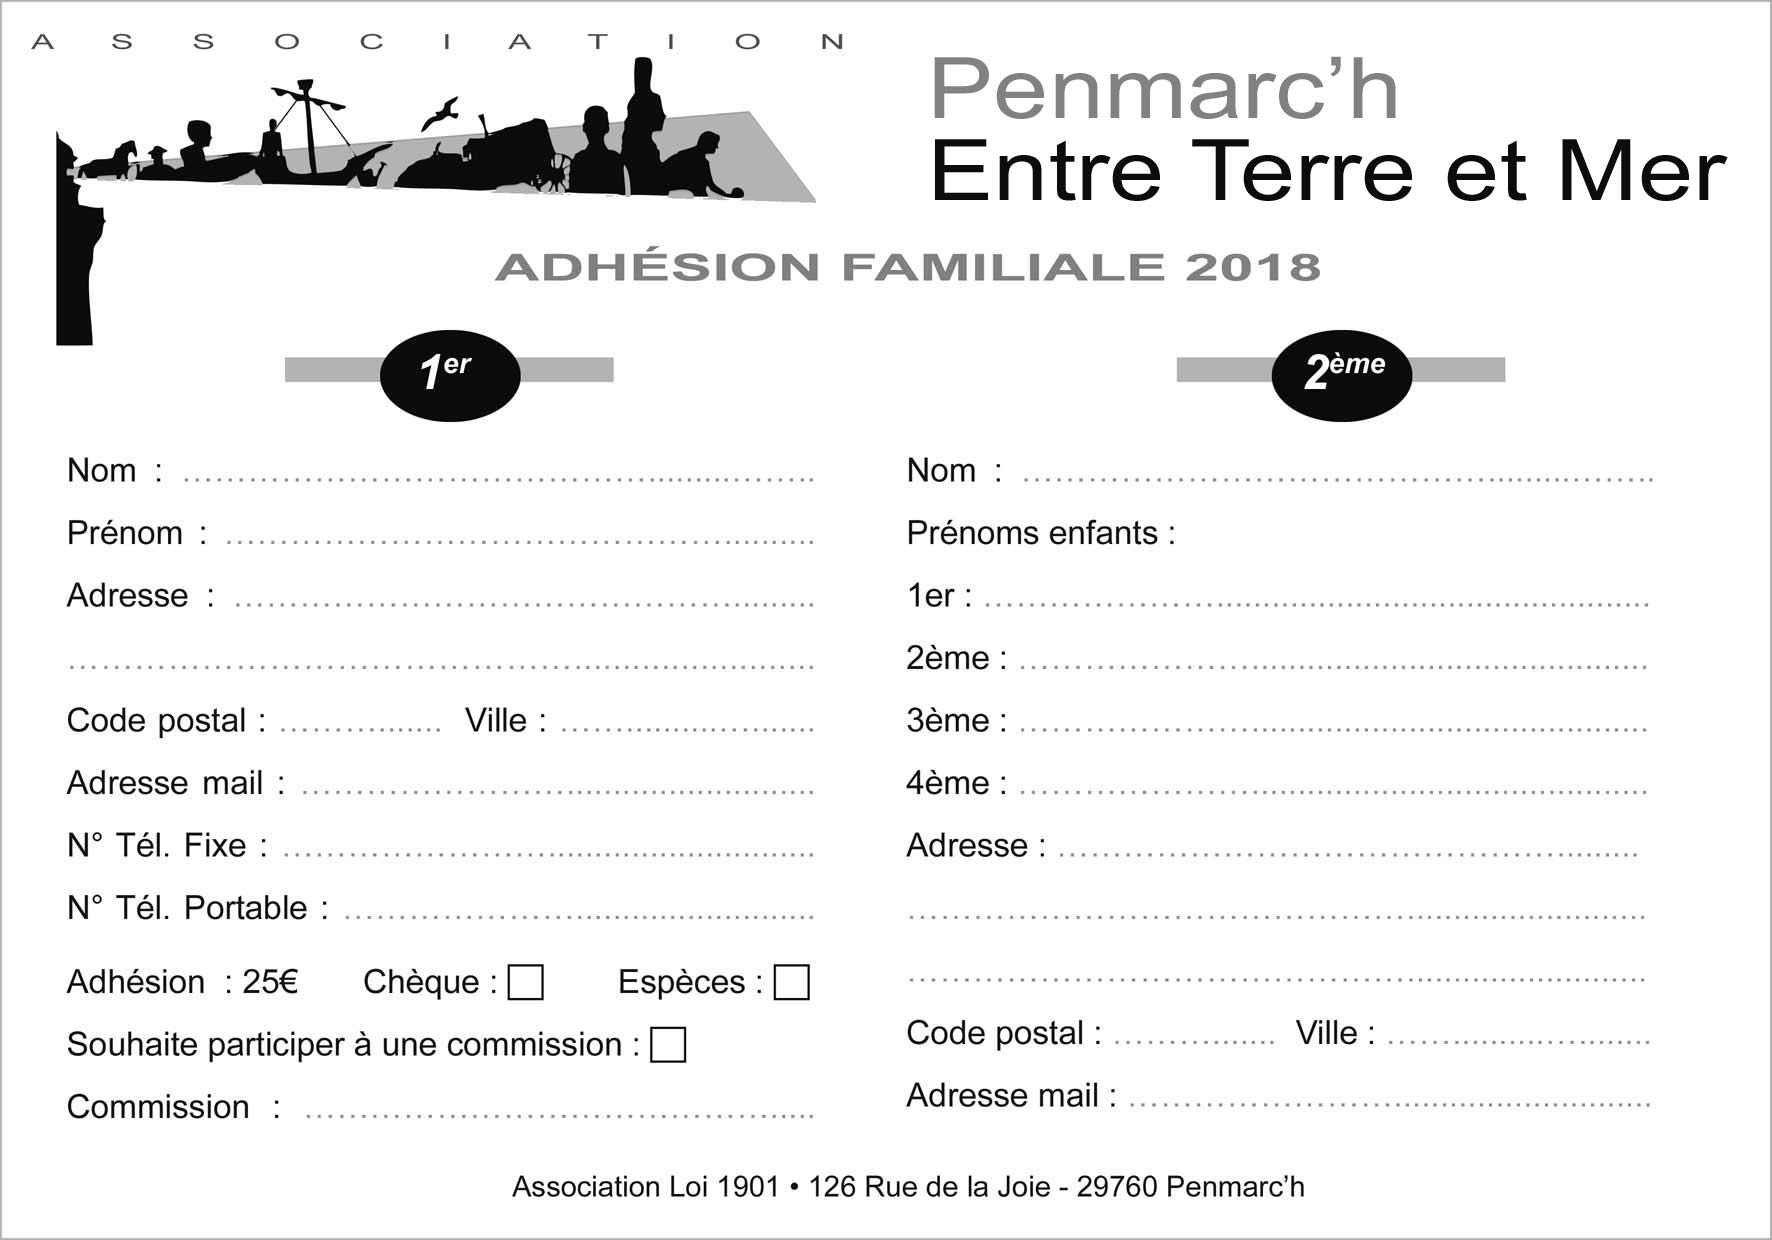 Association entre terre et mer penmarch